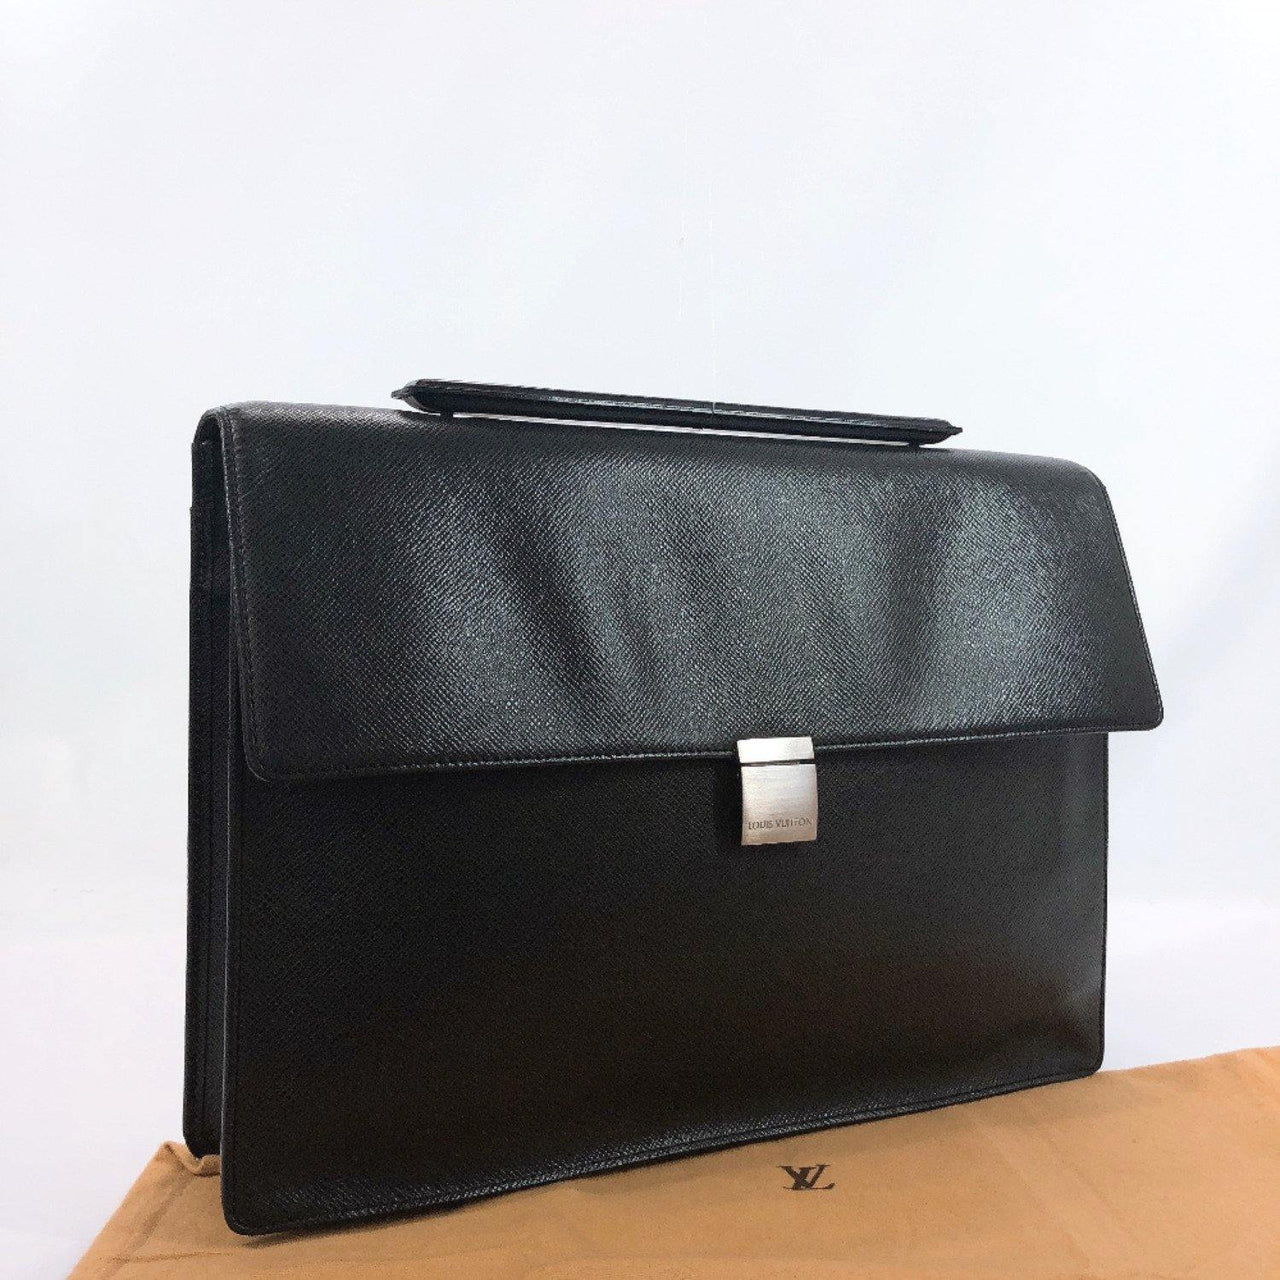 LOUIS VUITTON Business bag M30772 Porte-Documents アンガラ Taiga black mens Used - JP-BRANDS.com